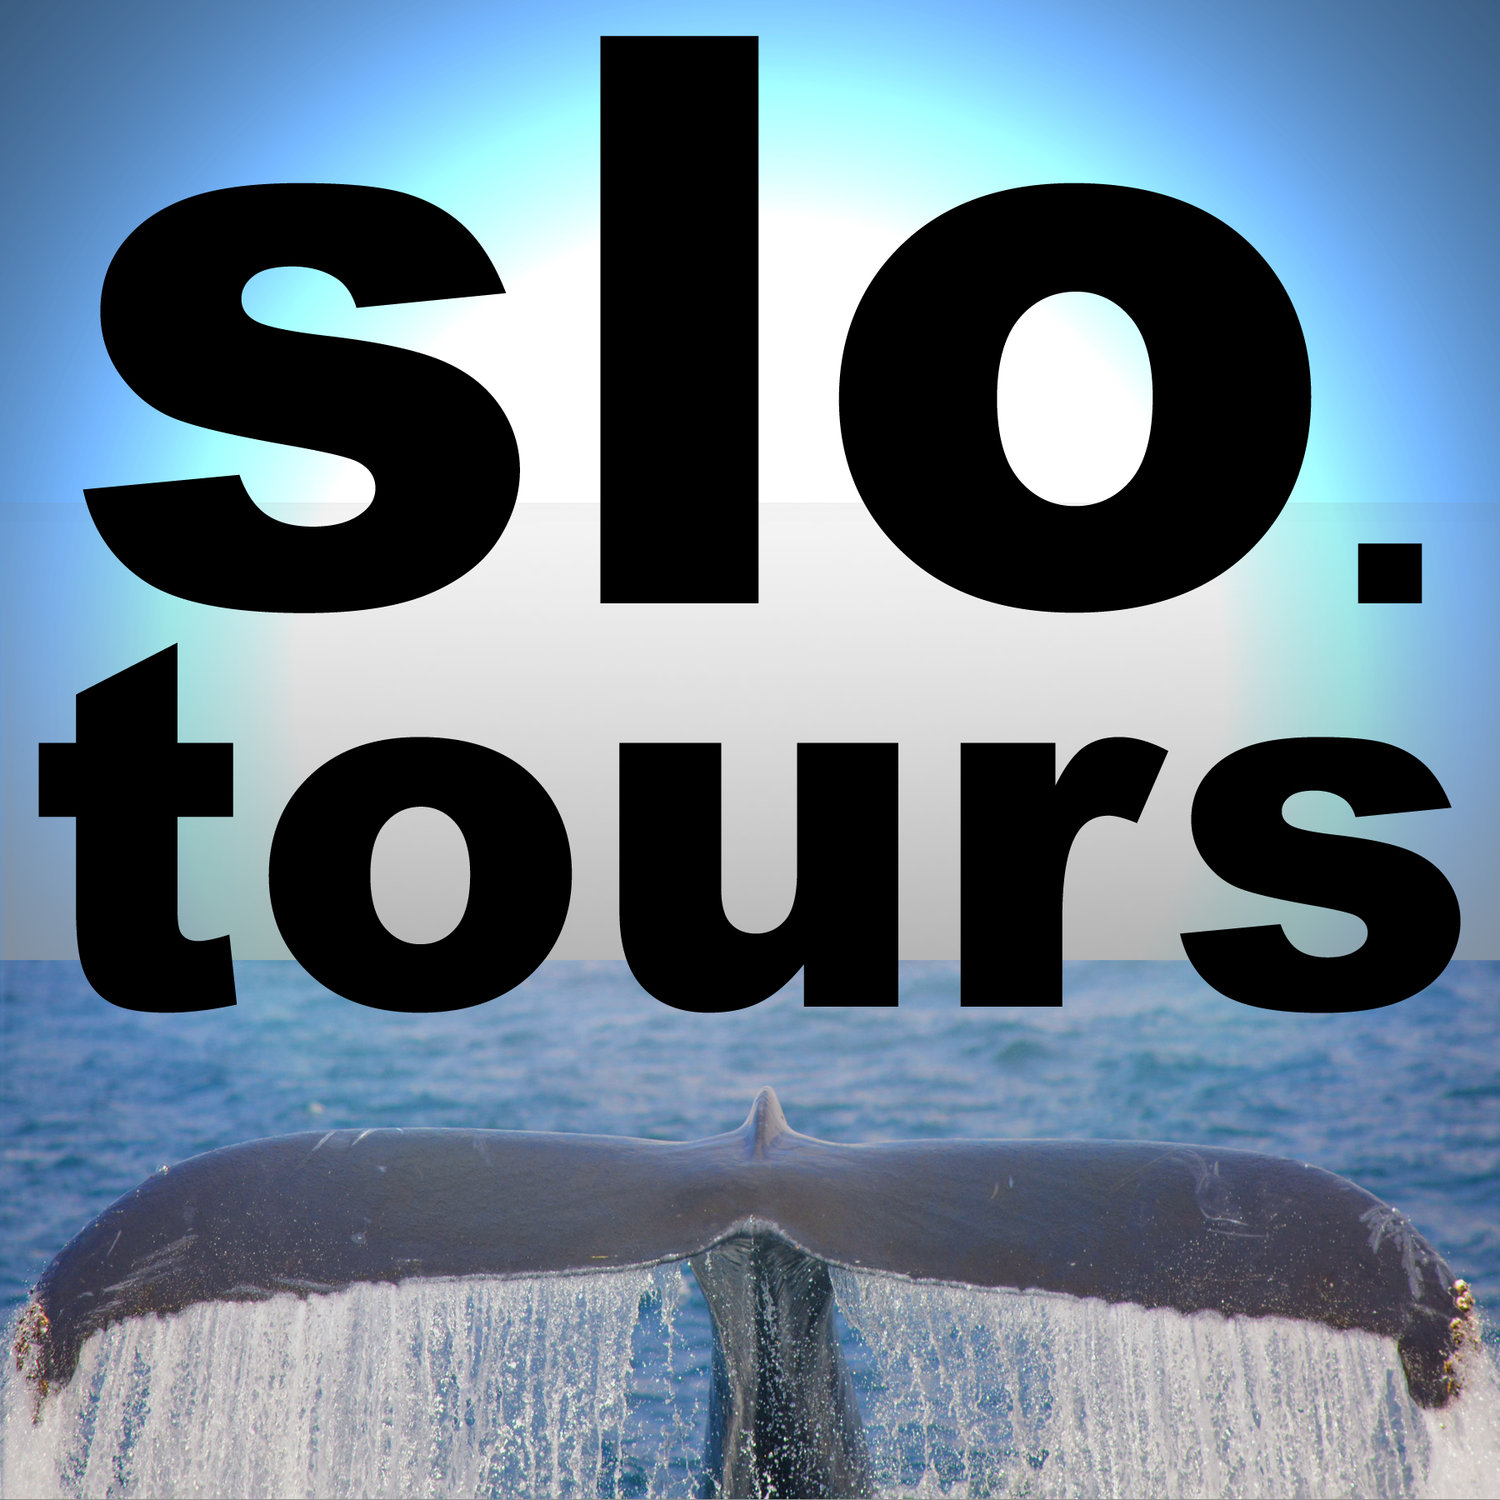 Experience the best Activities in San Luis Obispo, California — Explore the Central Coast with SLO.TOURS